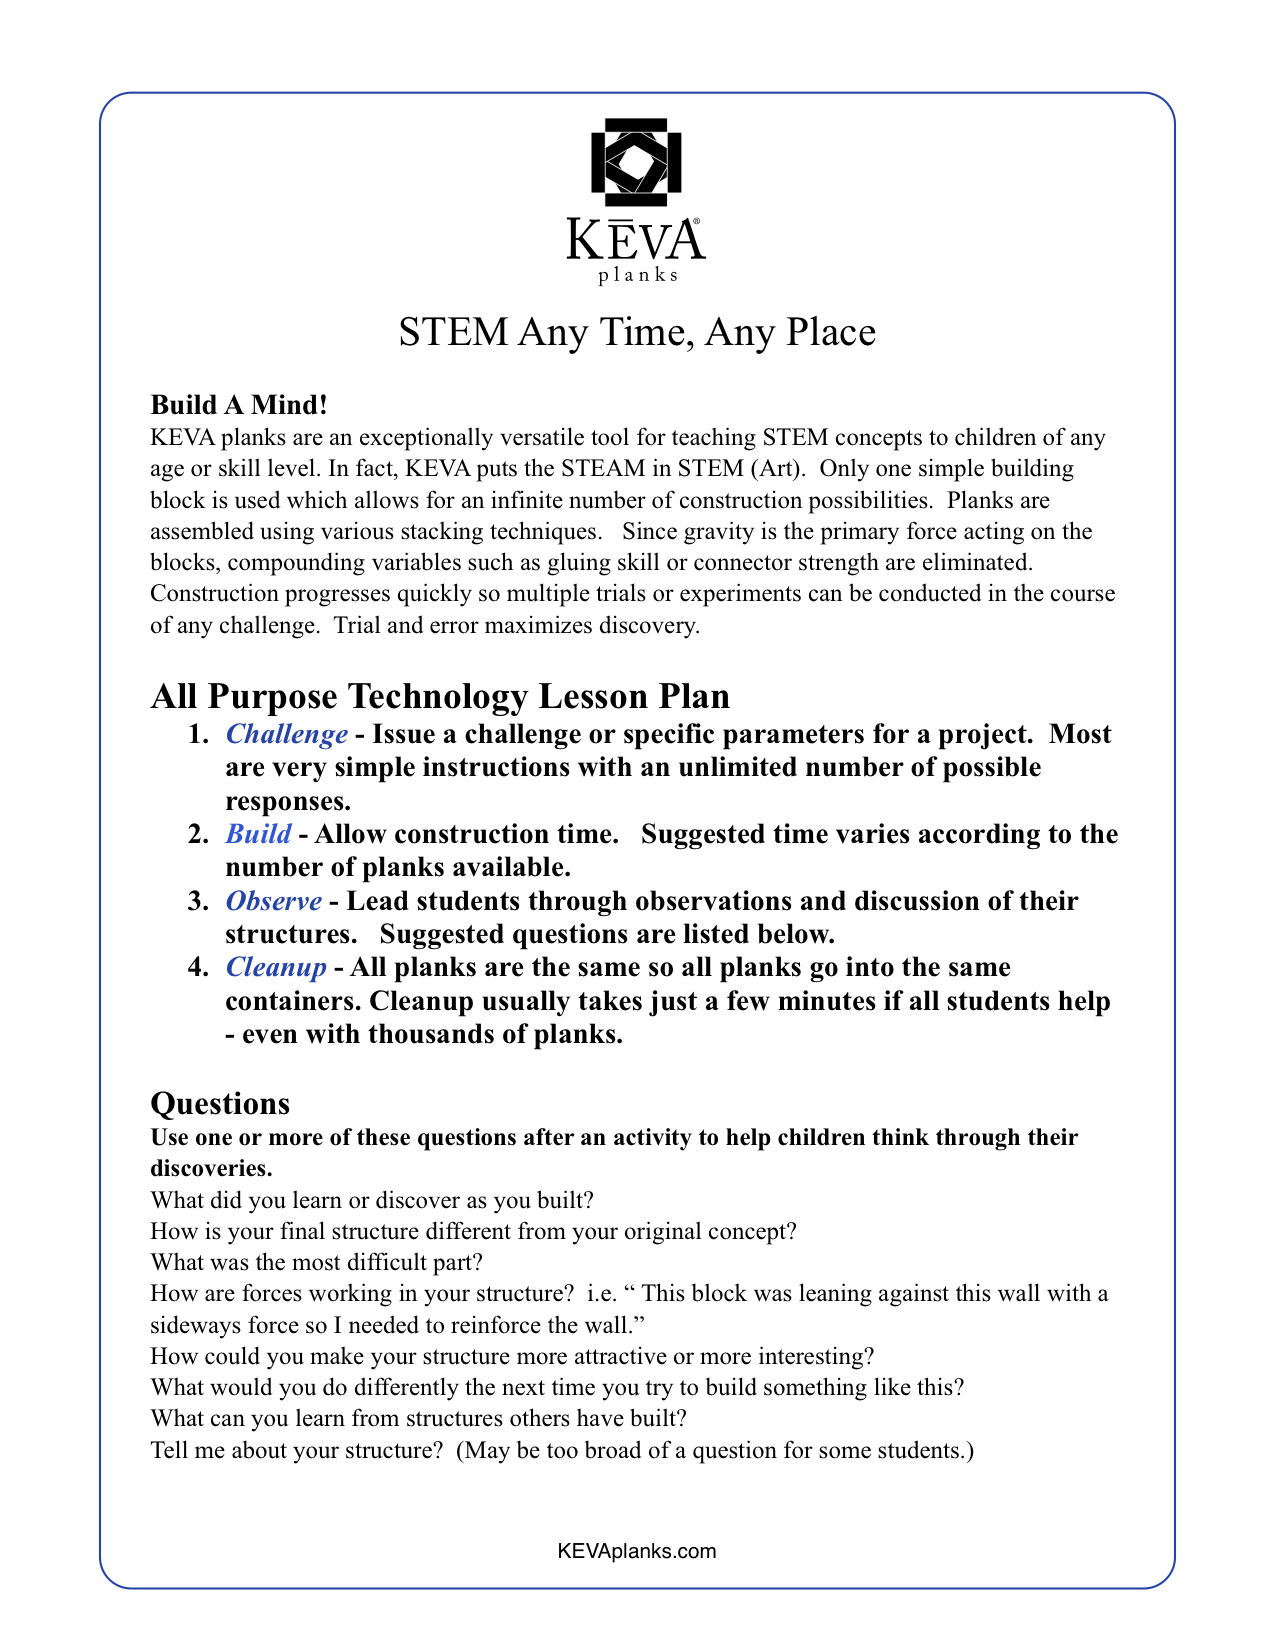 STEM Anytime Any Place - Lesson plan pdf